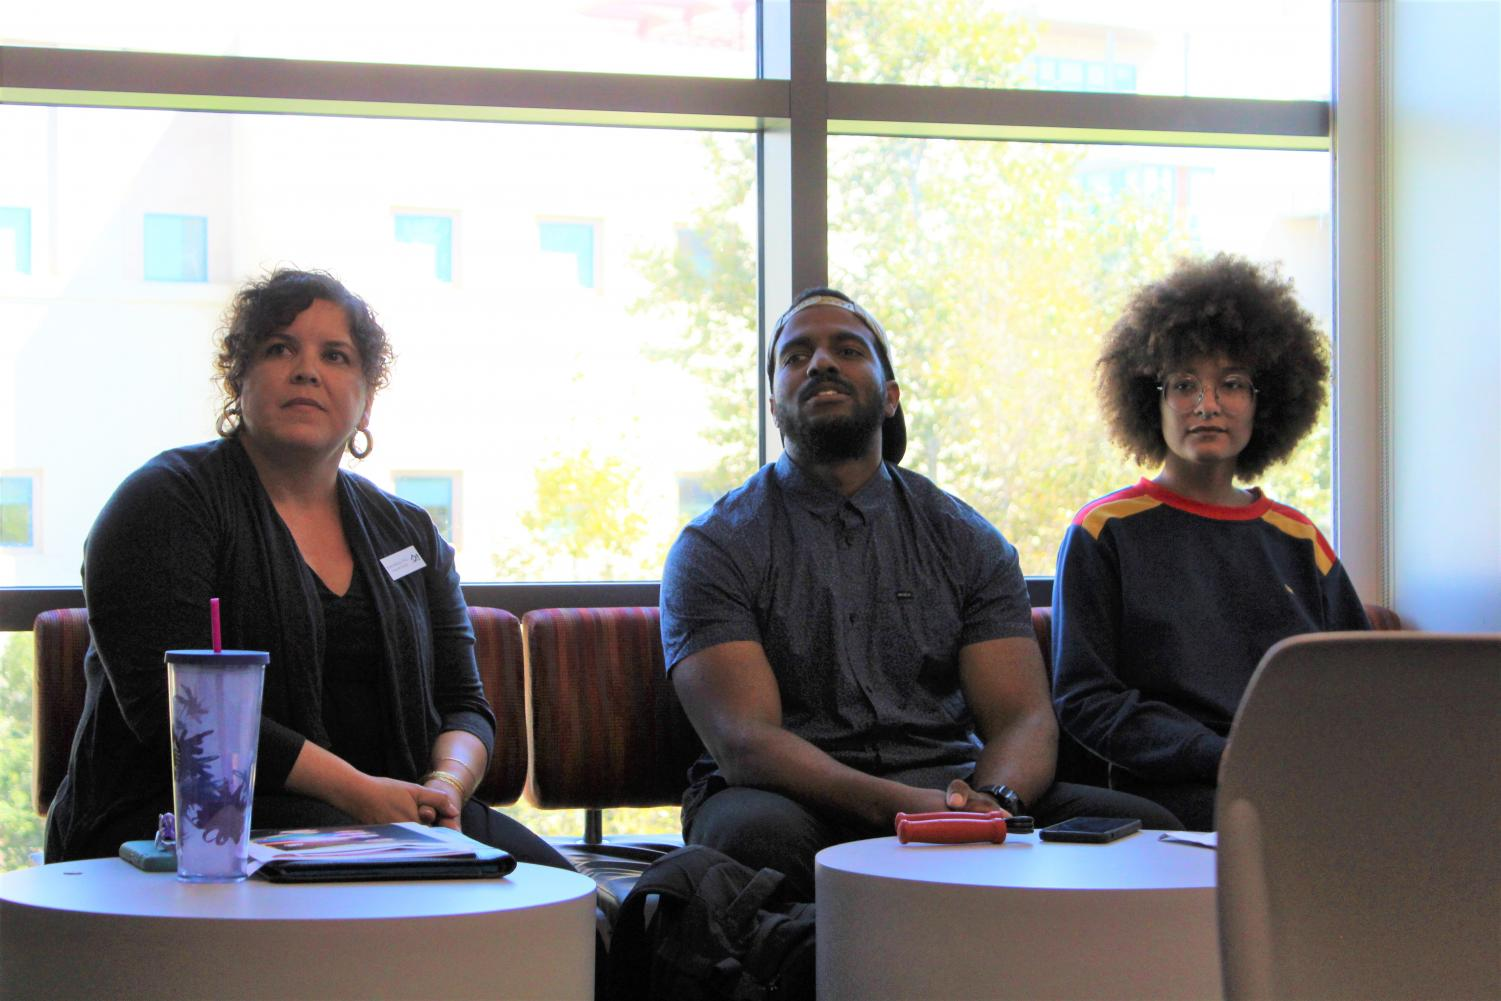 Dr. Anne Macias (left), Pedro Lebron Guzman III (middle), and Danni Flowers (right) share personal stories about their Afro-Latinx heritage.